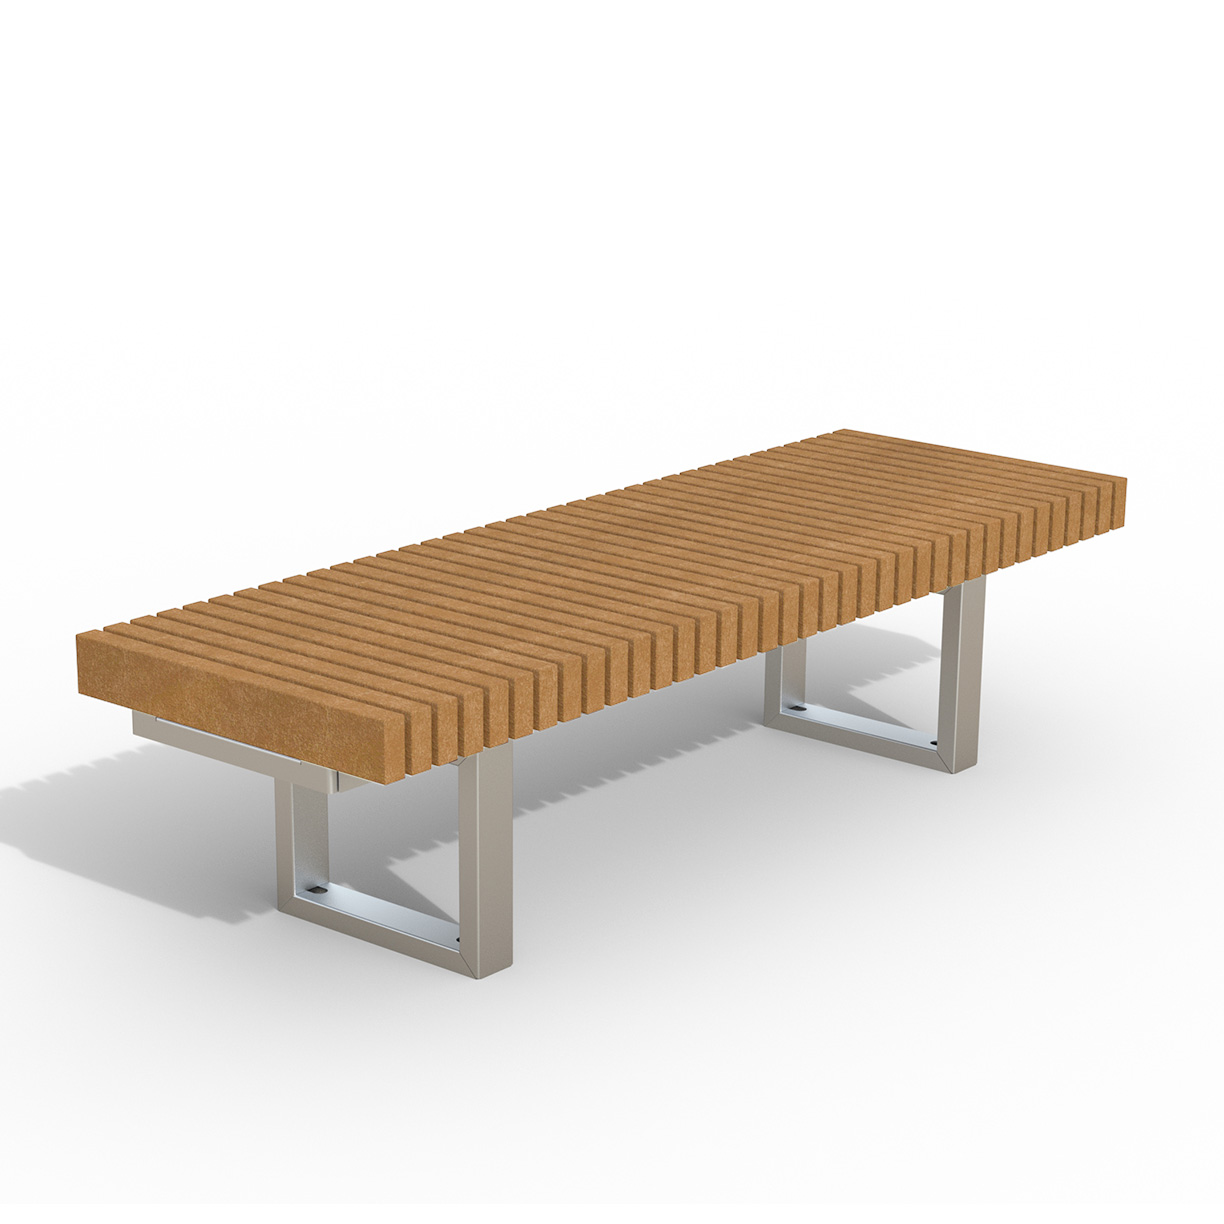 INF24L6R  Infinity Collection 2' x 6' Linear Recycled Plastic Bench